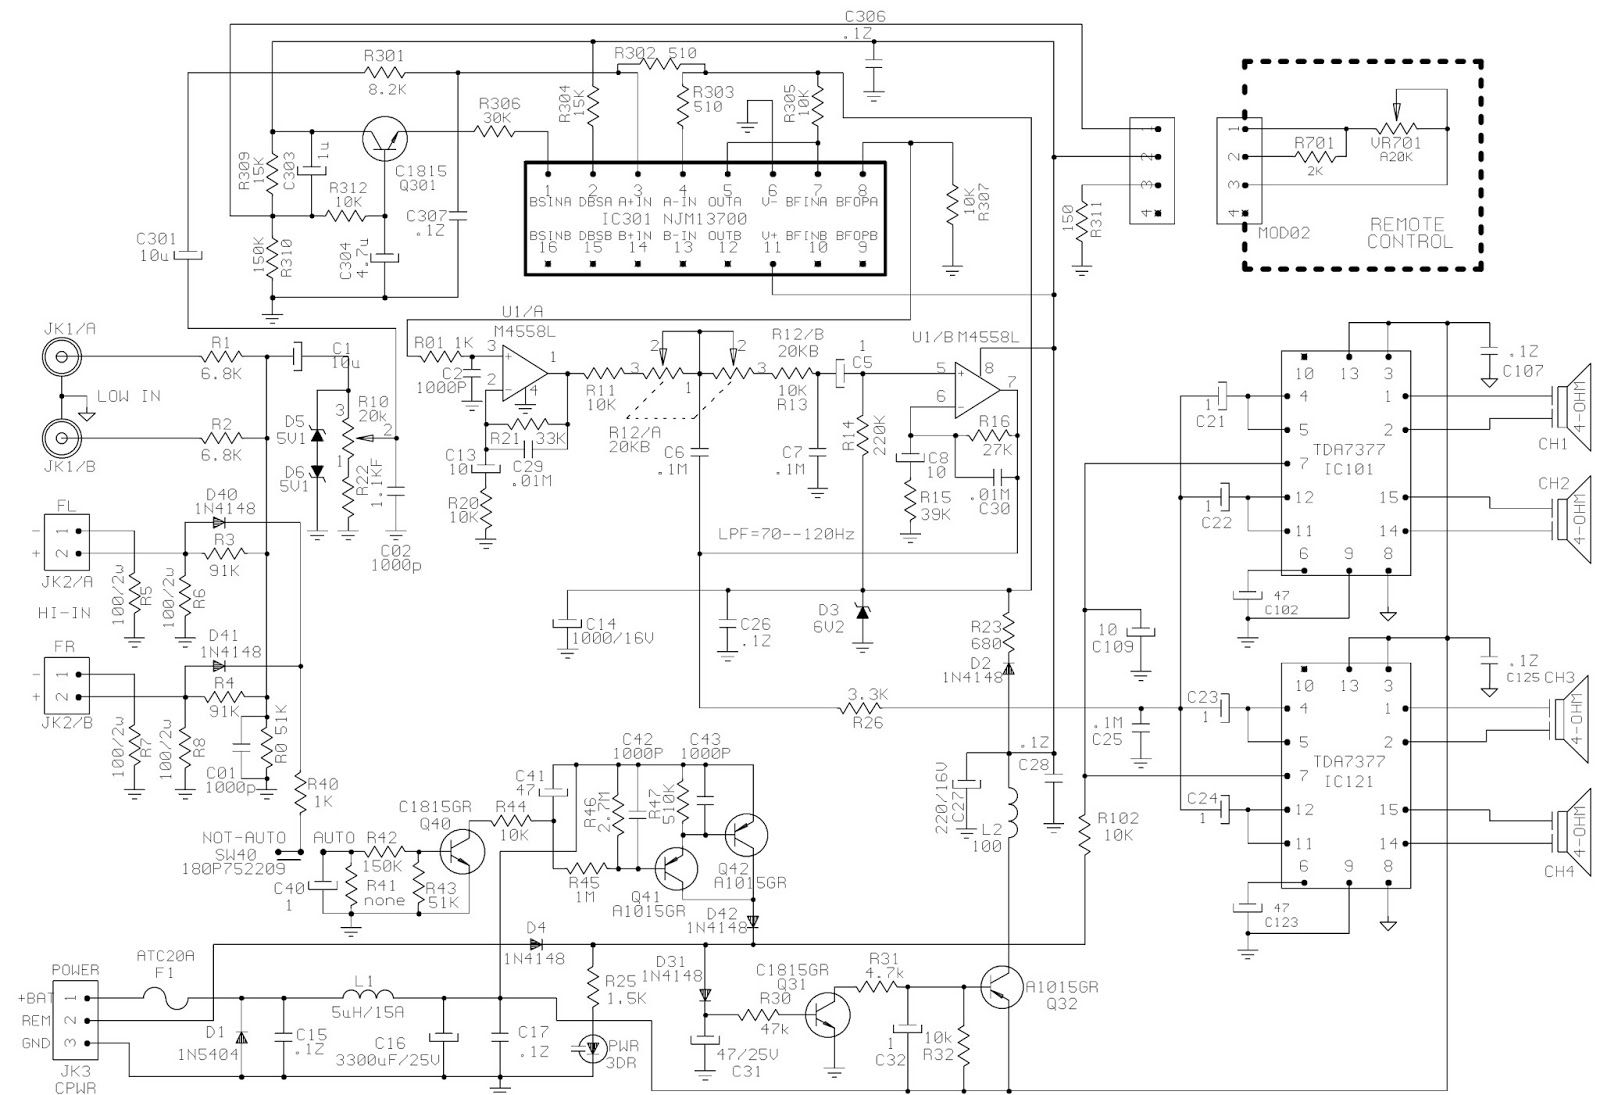 jbl basspro - subwoofer - specifications - schematic ... printed circuit board schematics wiring a circuit board